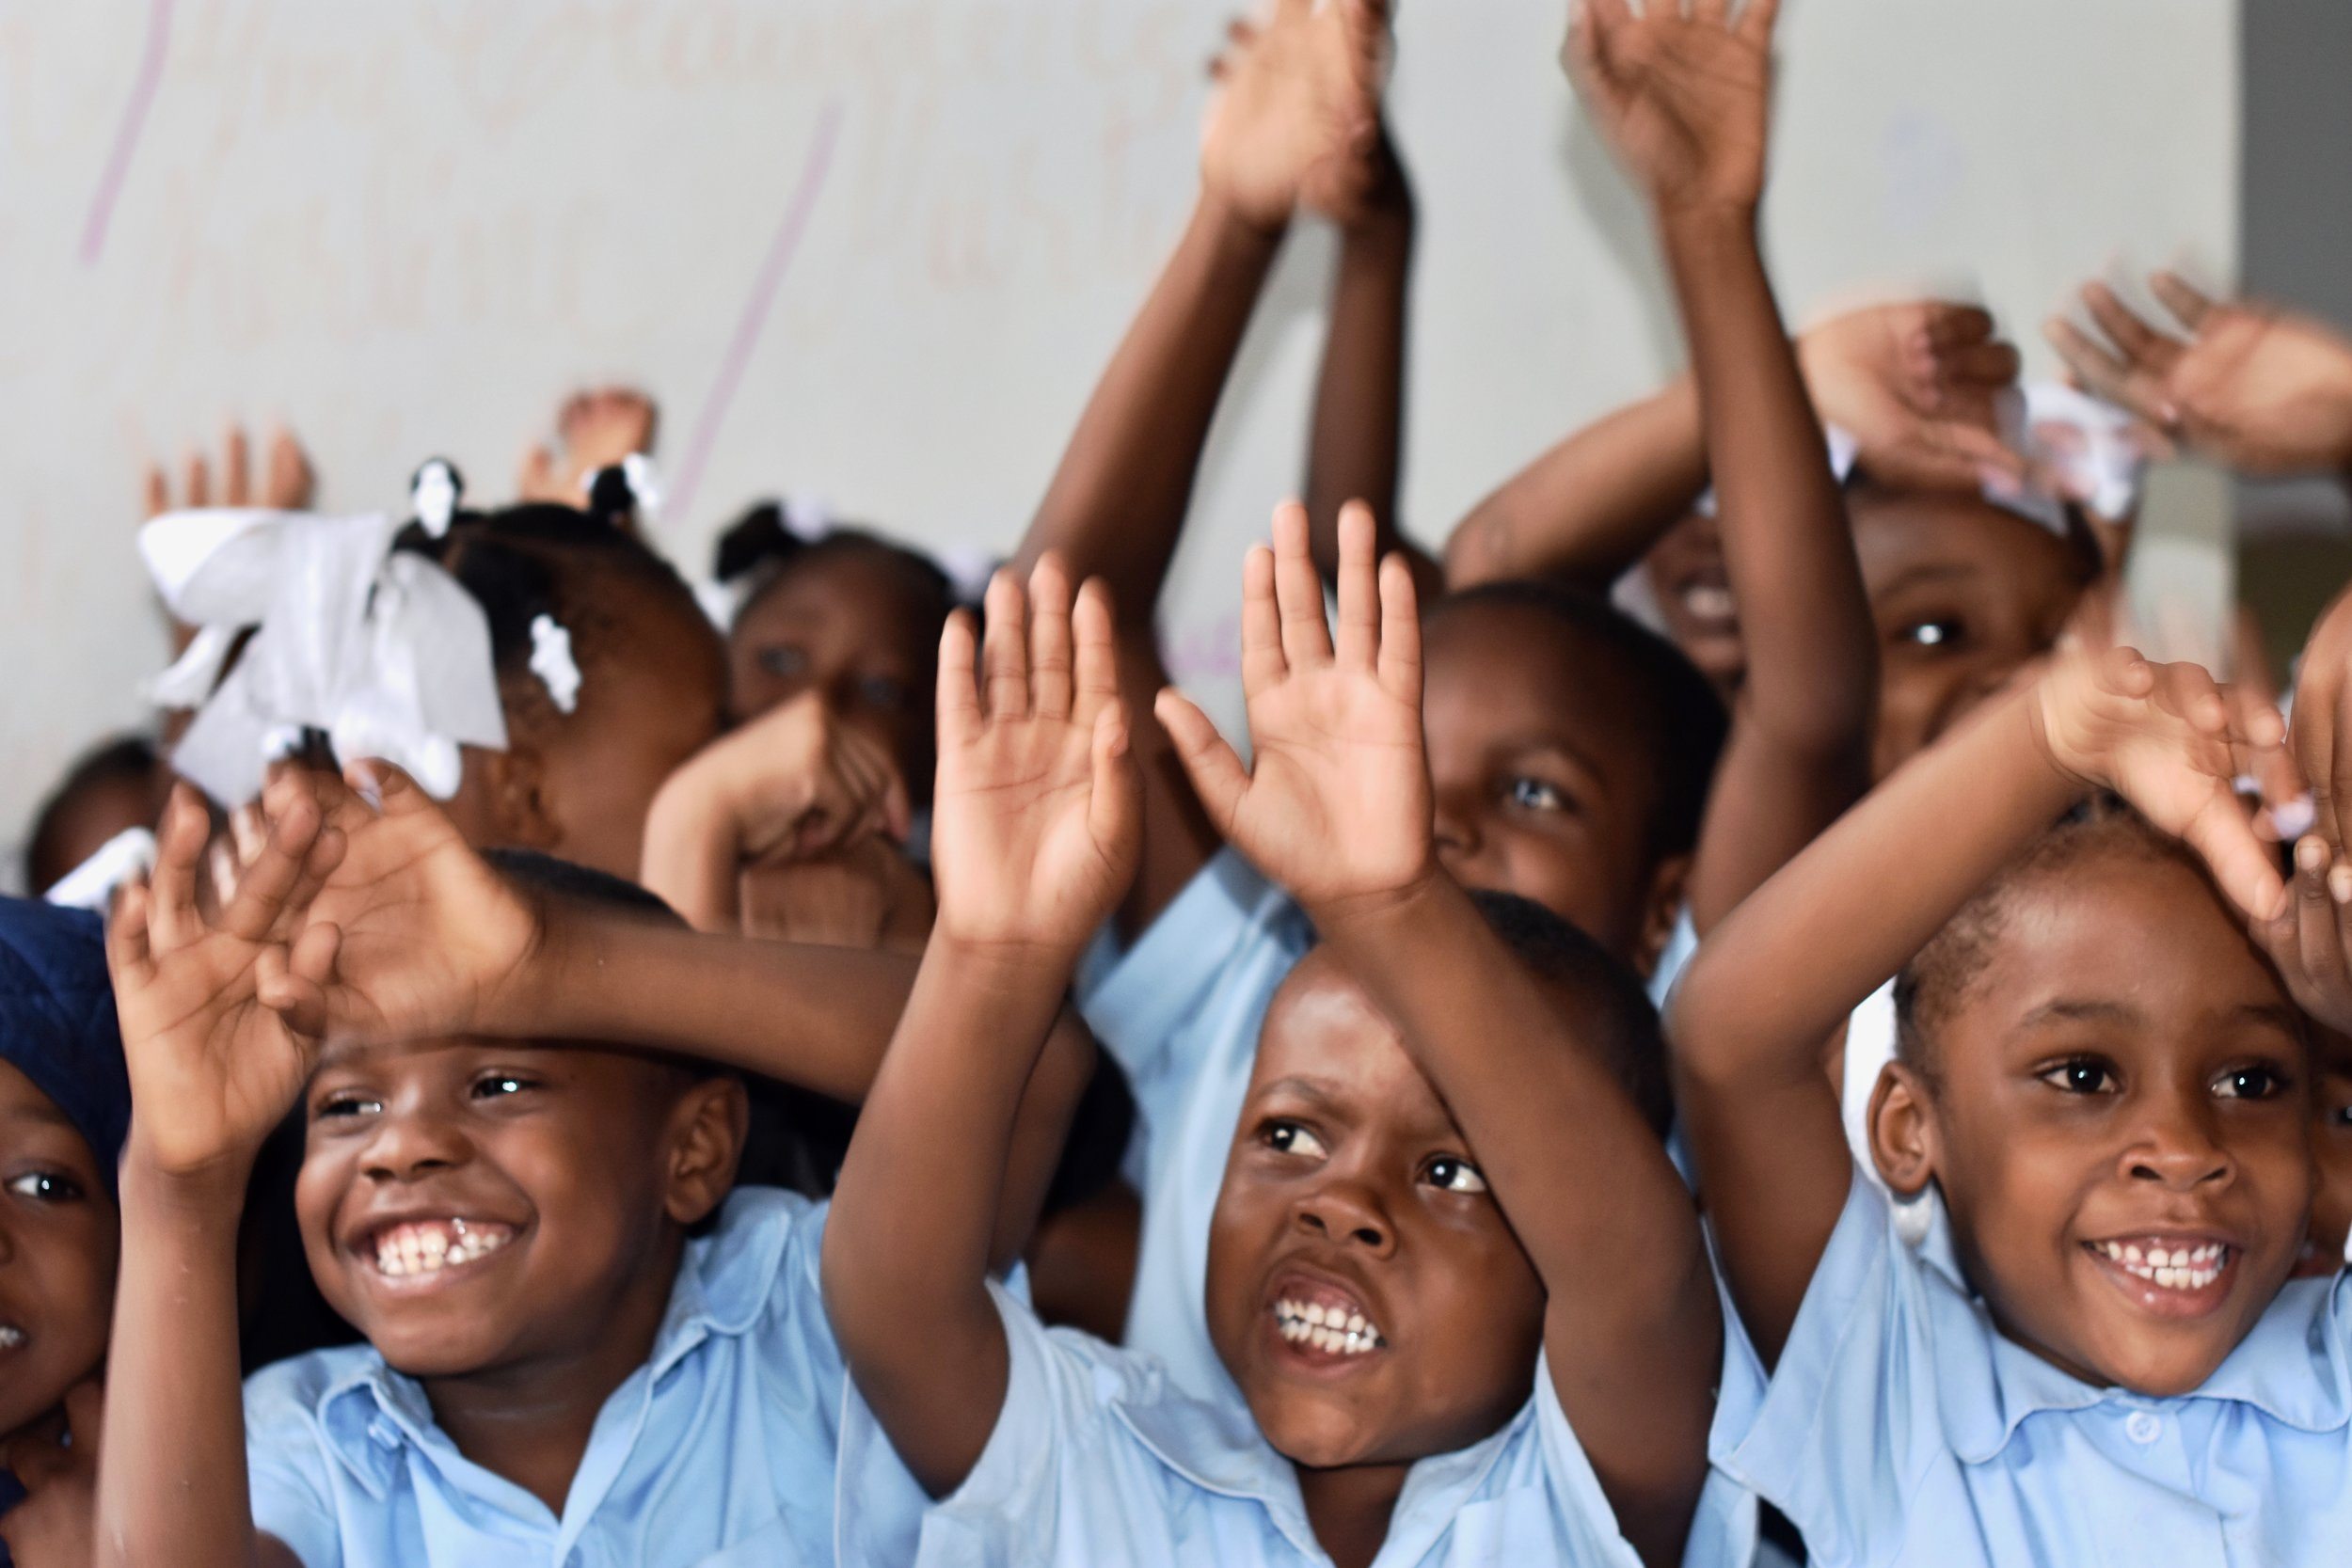 Our students in Port-au-Prince, Haiti